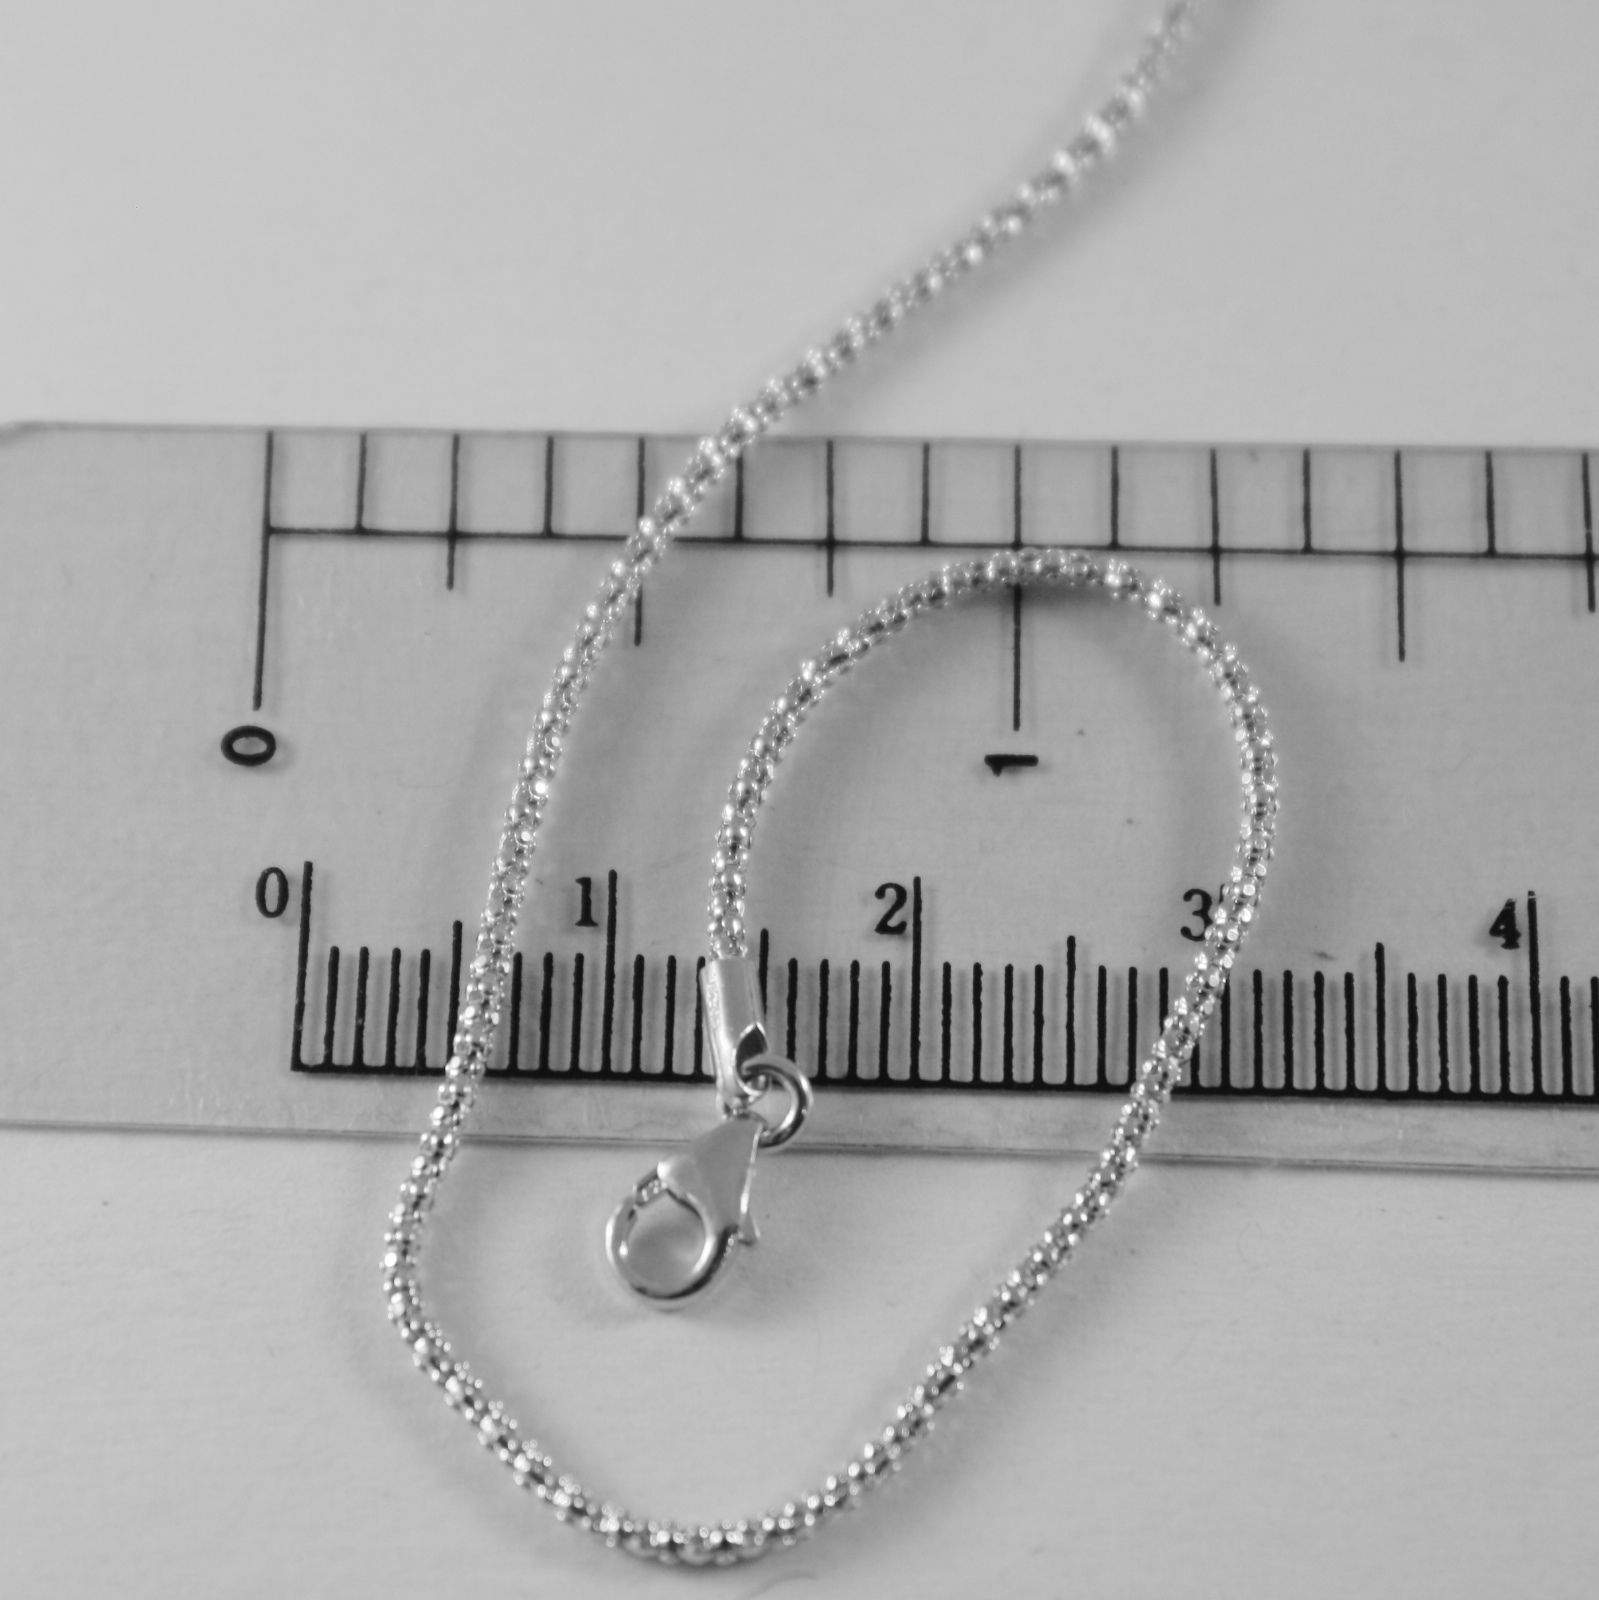 18K WHITE GOLD CHAIN MINI BASKET ROUND MESH 1 MM WIDTH 15.75 INCH MADE IN ITALY